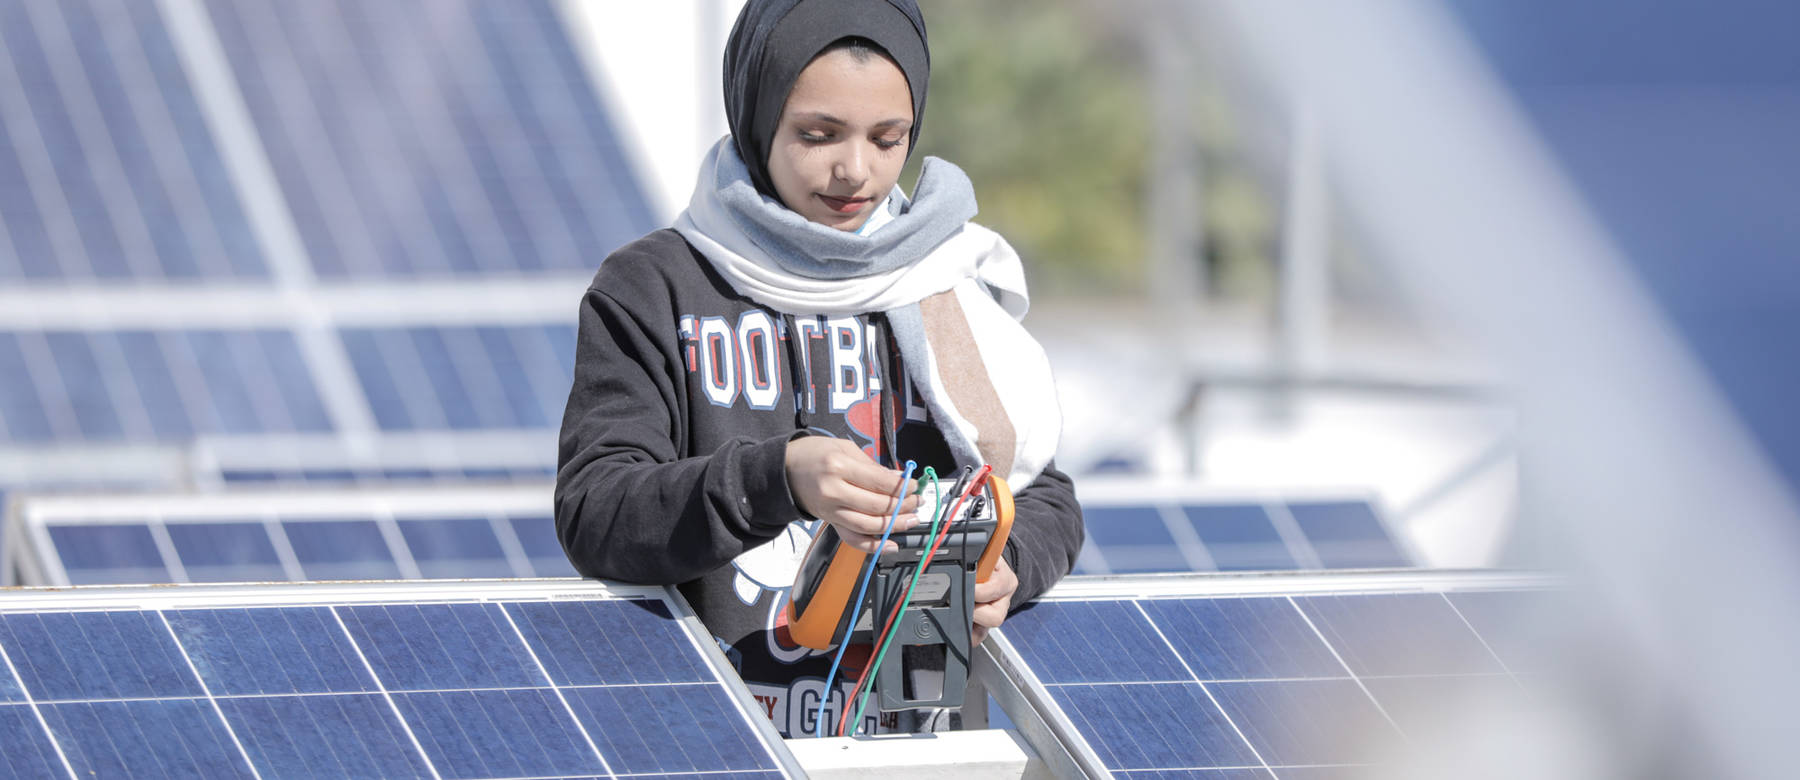 Ghada Krayem, a Palestine refugee, receiving vocational training on installation, operating, maintenance and programming of Solar Photovoltaic Systems at GTC.© 2021 UNRWA Photo by Mohammed Hinnawi